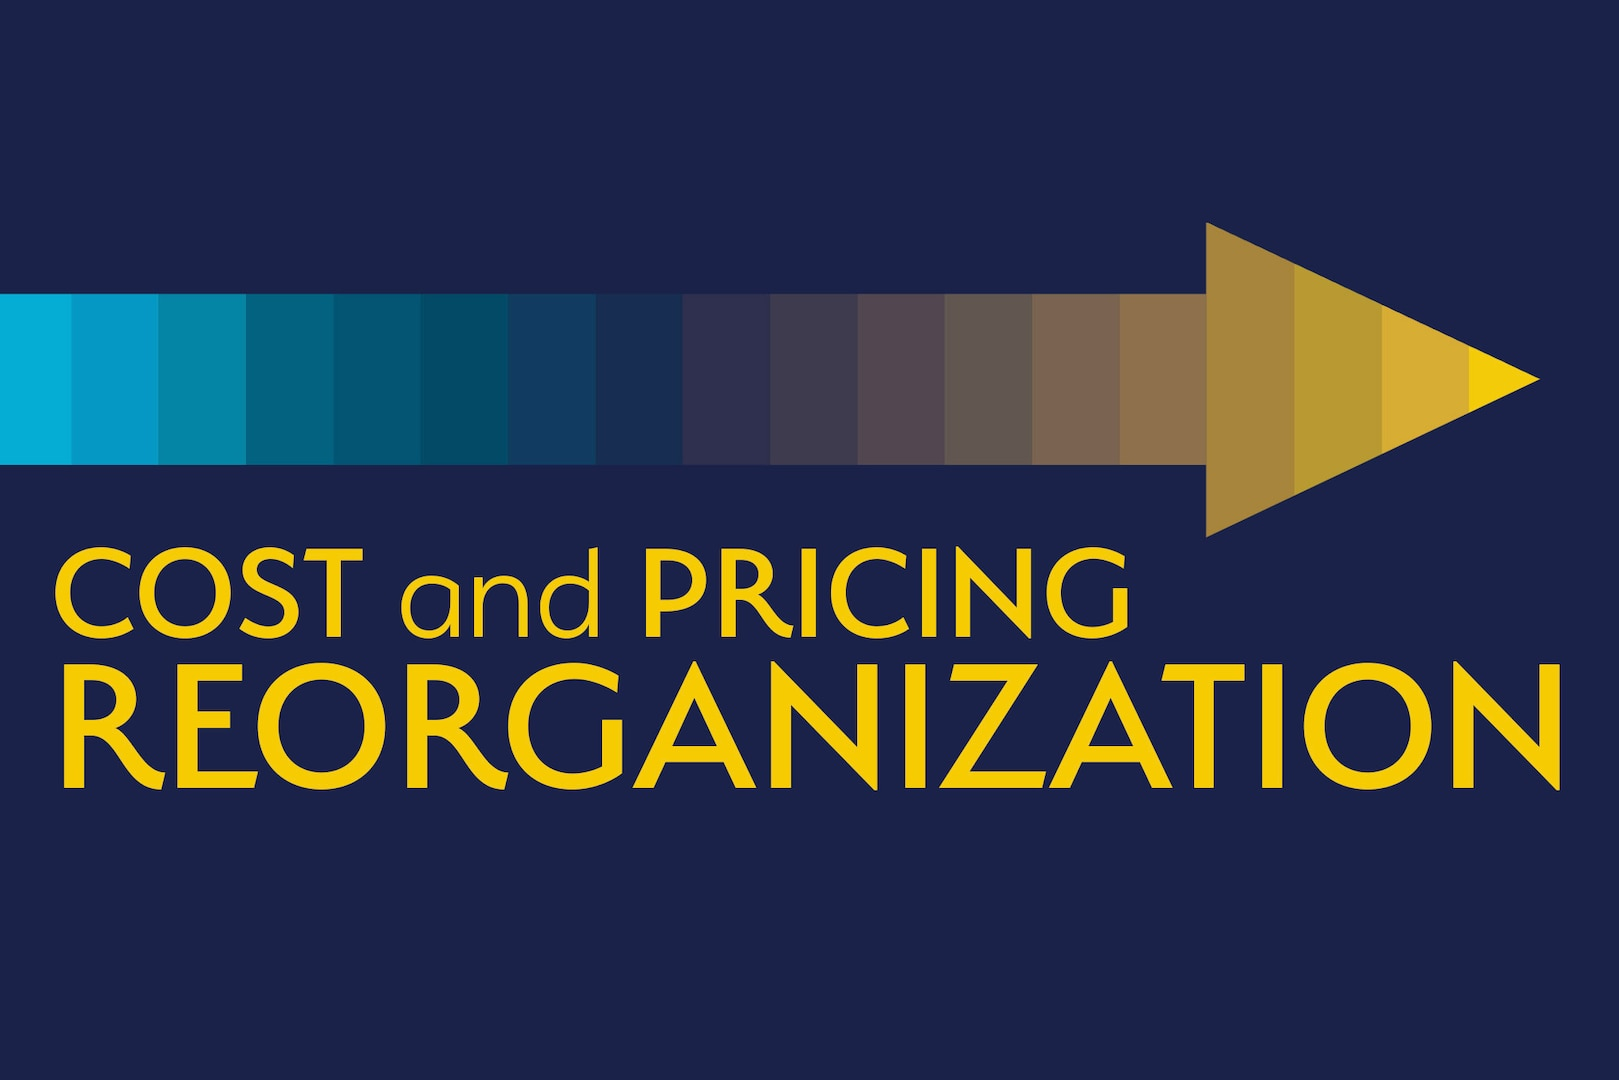 Cost and Pricing Reorganization